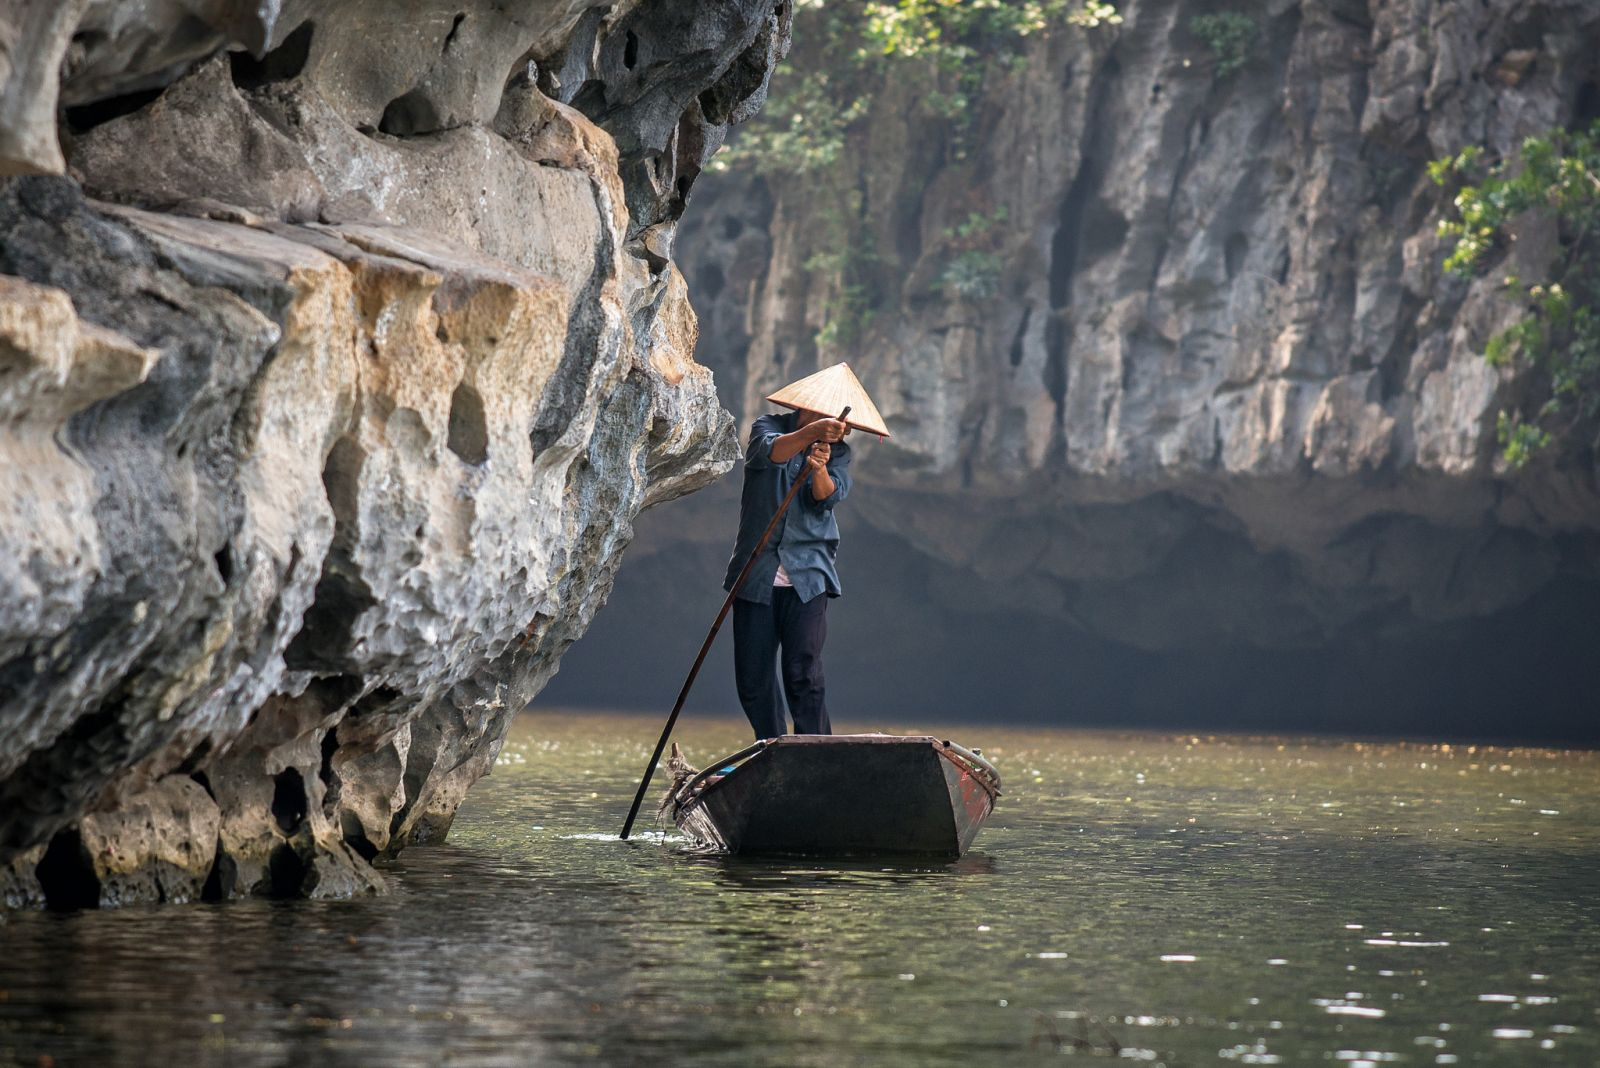 SPECIAL-DESTINATIONS-IN-NEW-YEAR-HOLIDAY-YOU-MUST-GO-WHEN-TRAVELING-VIETNAM2